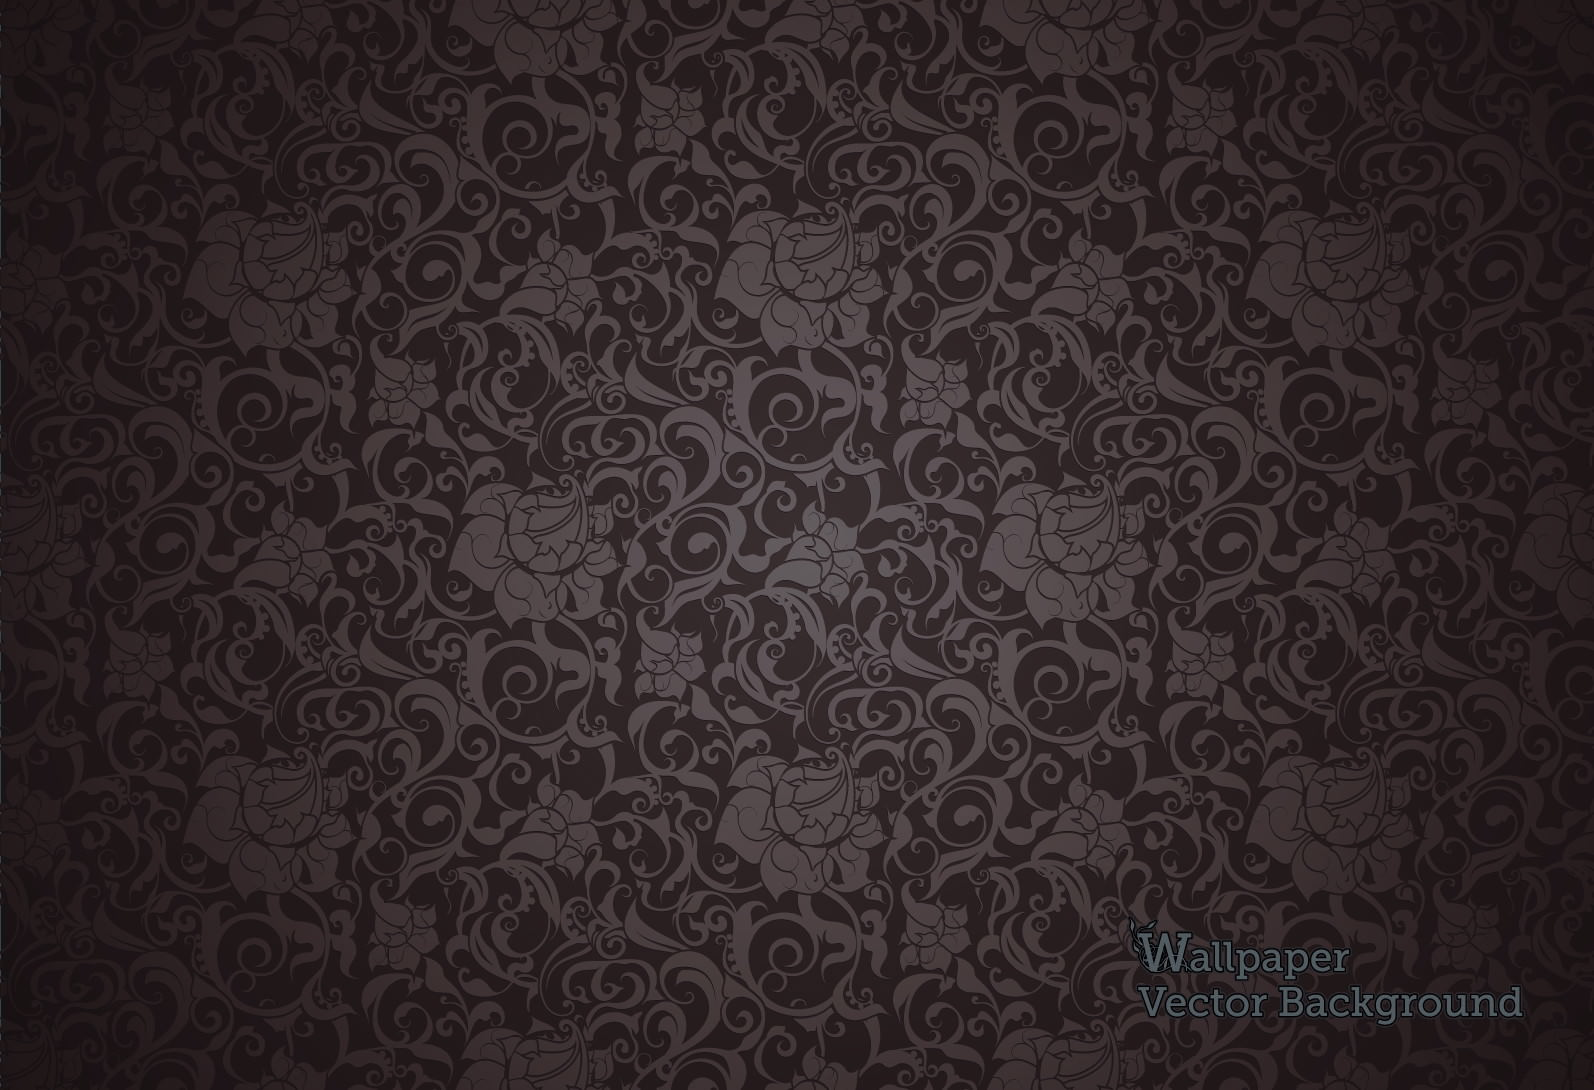 10 Dark Floral Wallpapers Patterns FreeCreatives